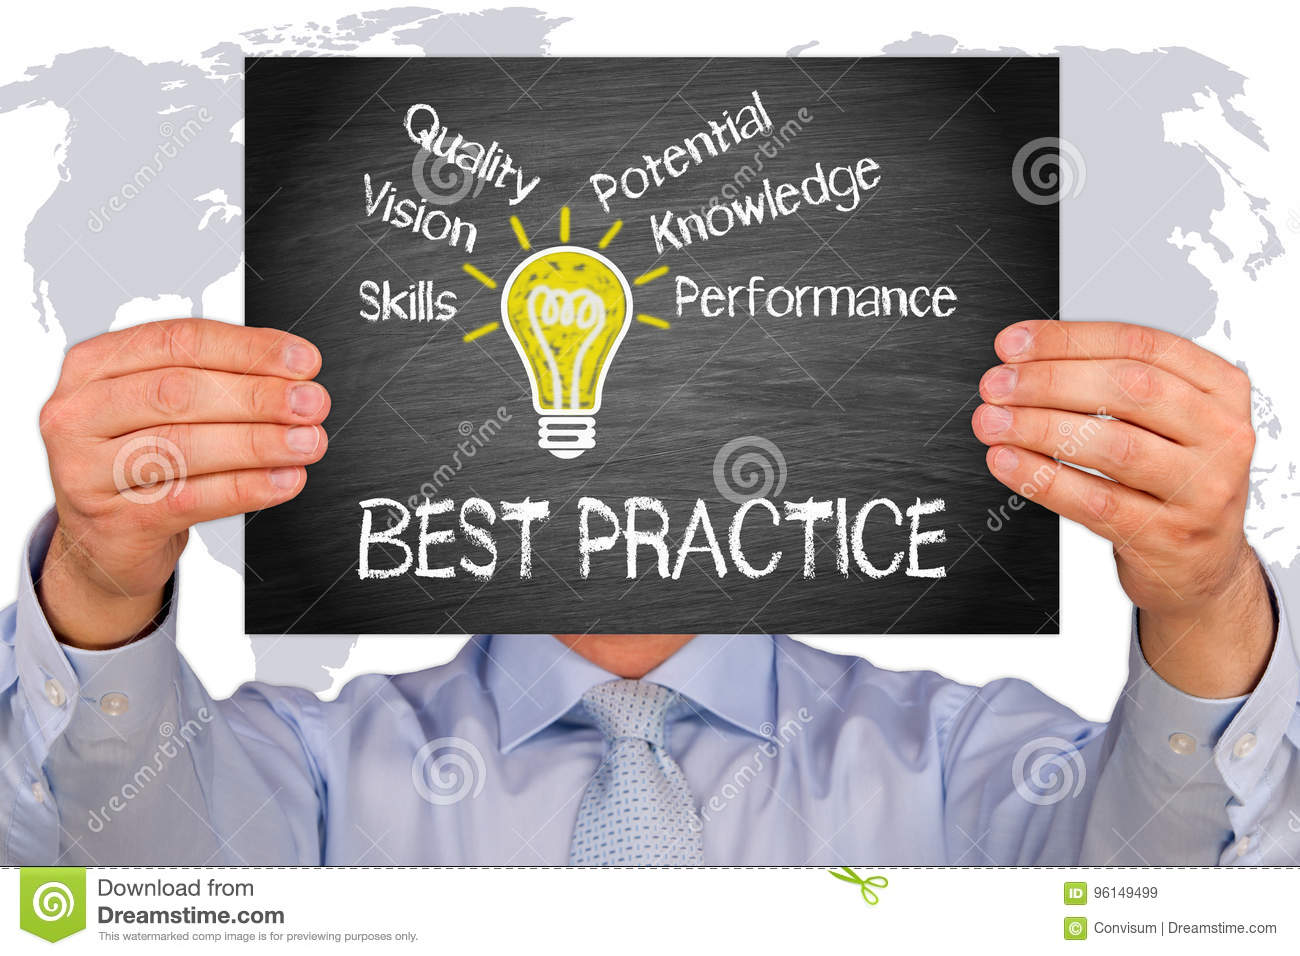 Best Practice - Manager holding sign with light bulb and text